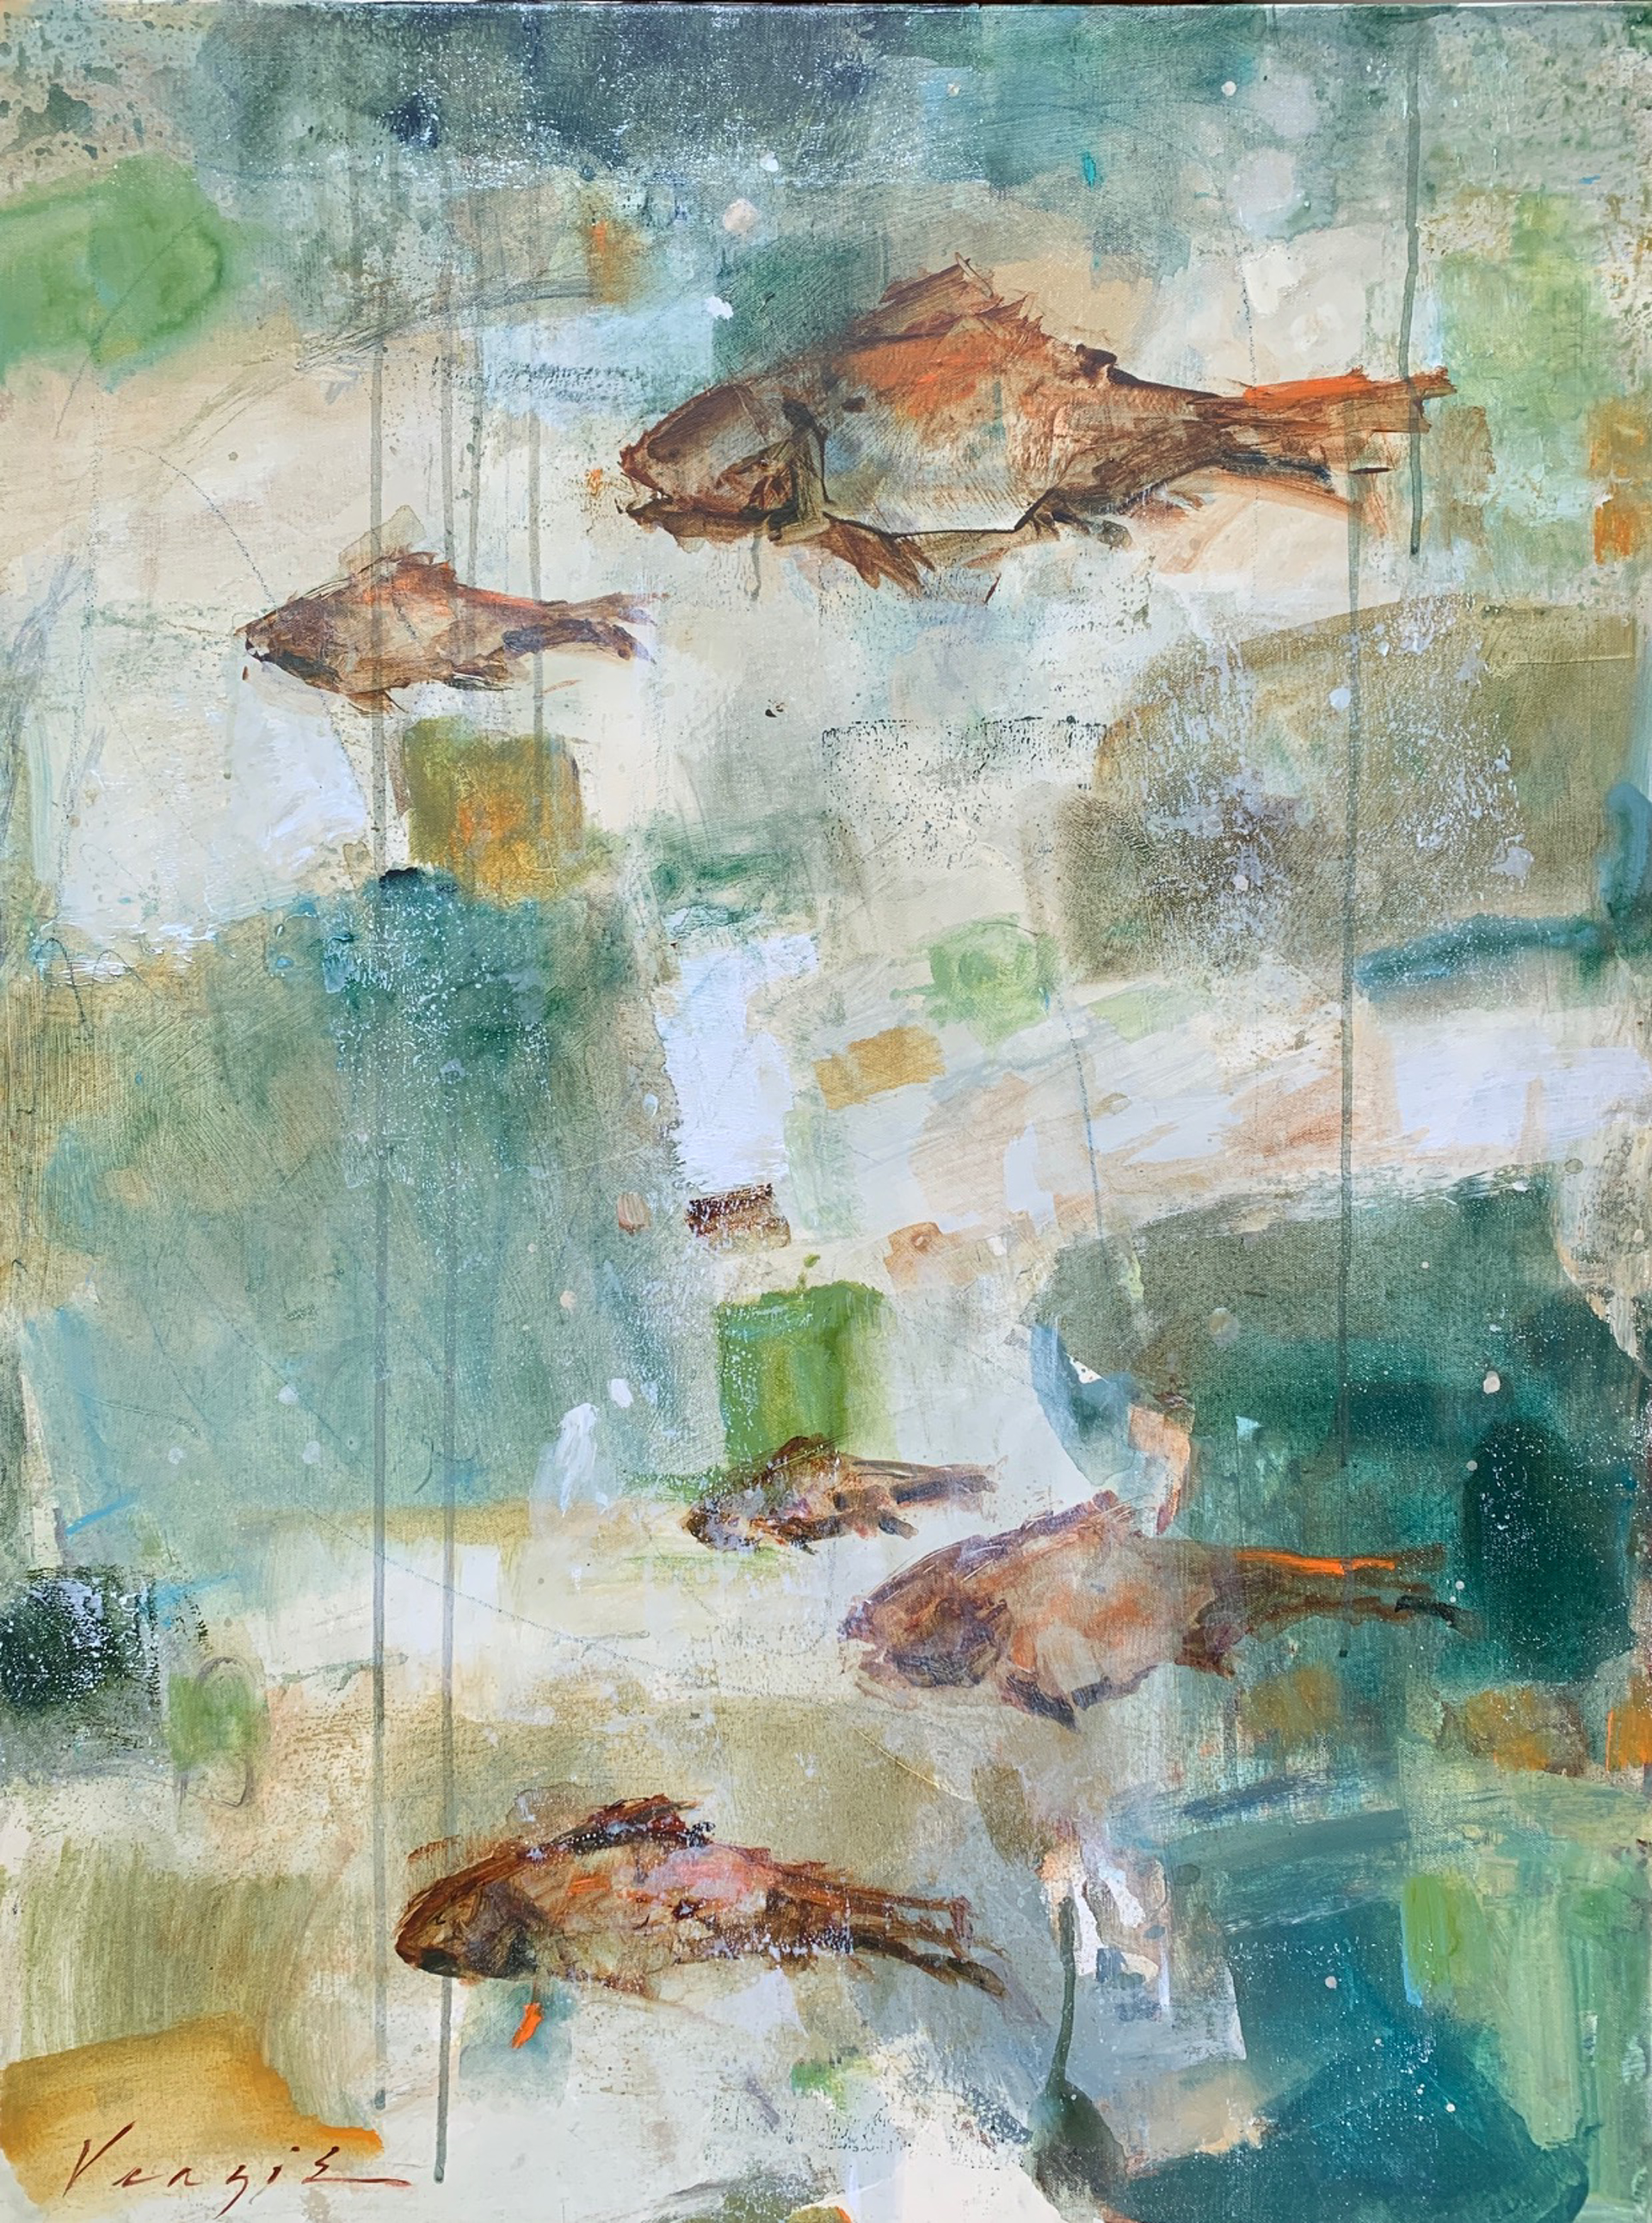 Fish School by Mary Miller Veazie